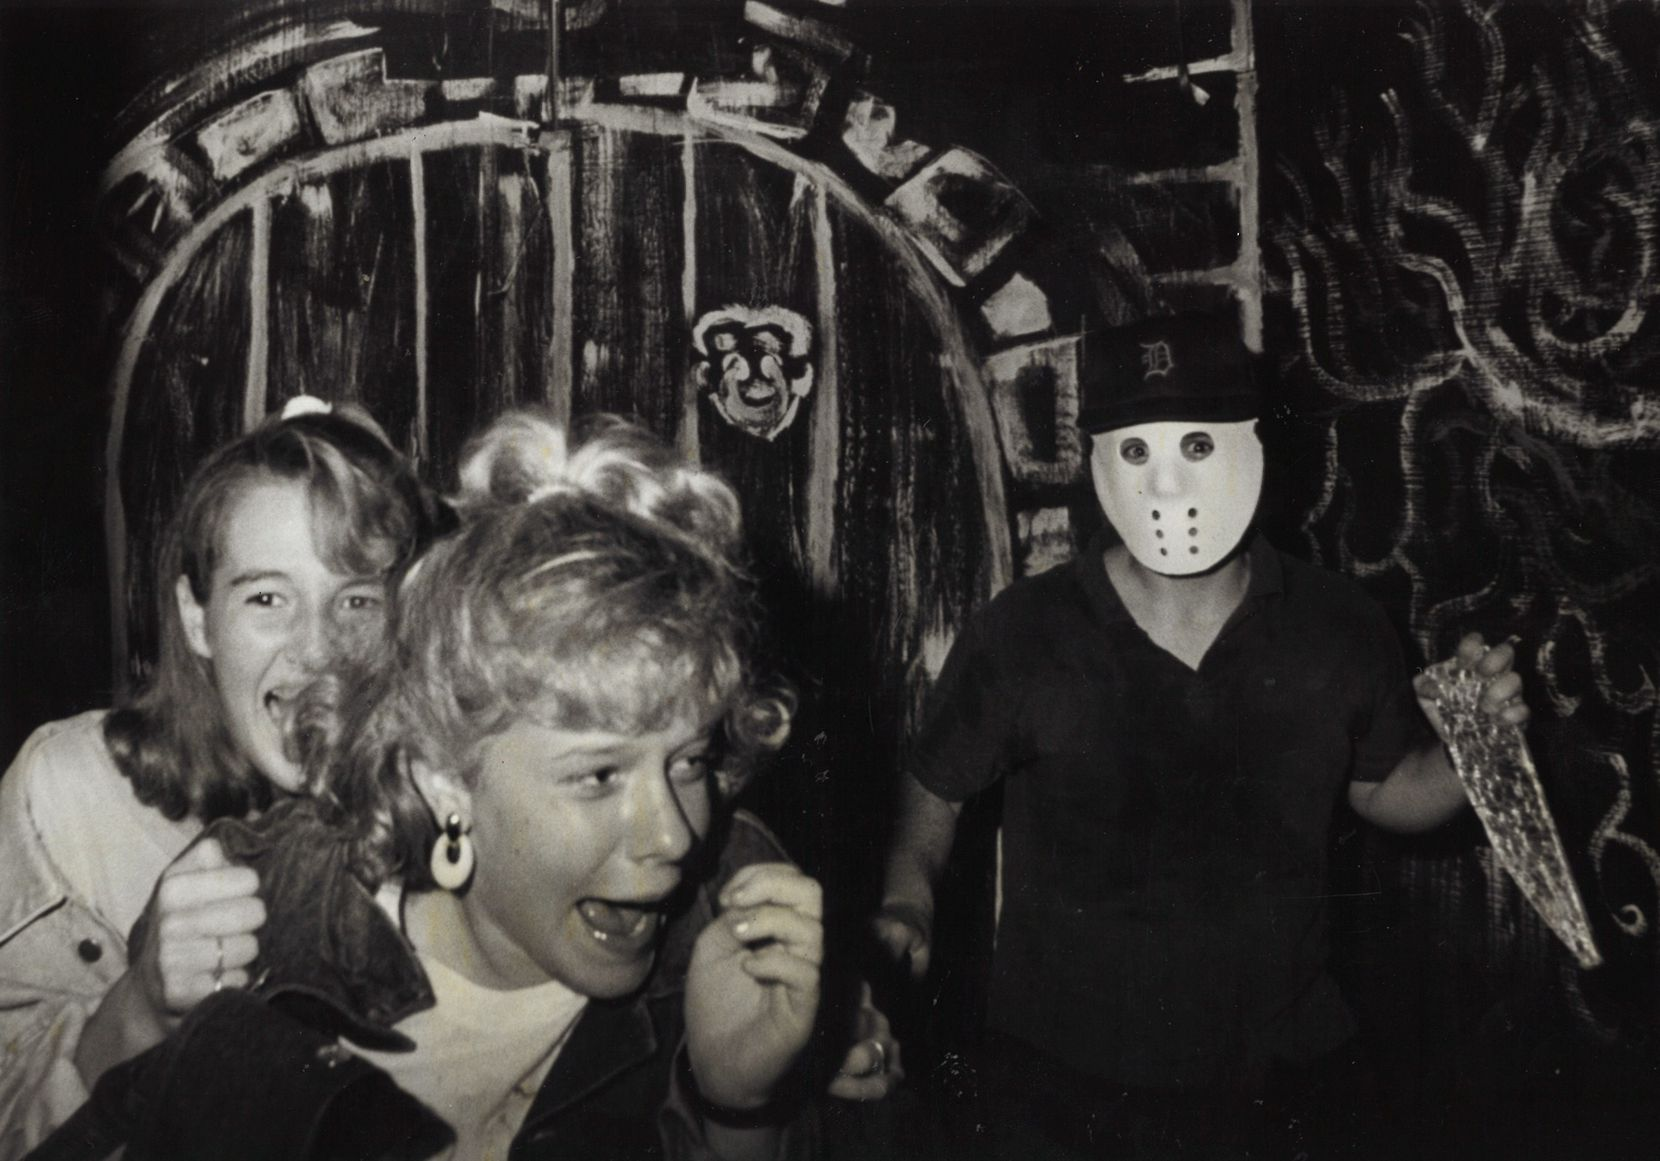 Amy Hasty grabs her friend Amy Mitchell as they run from one of the actors in a darkened hallway of the March of Dimes Haunted House on Oct. 16, 1987.